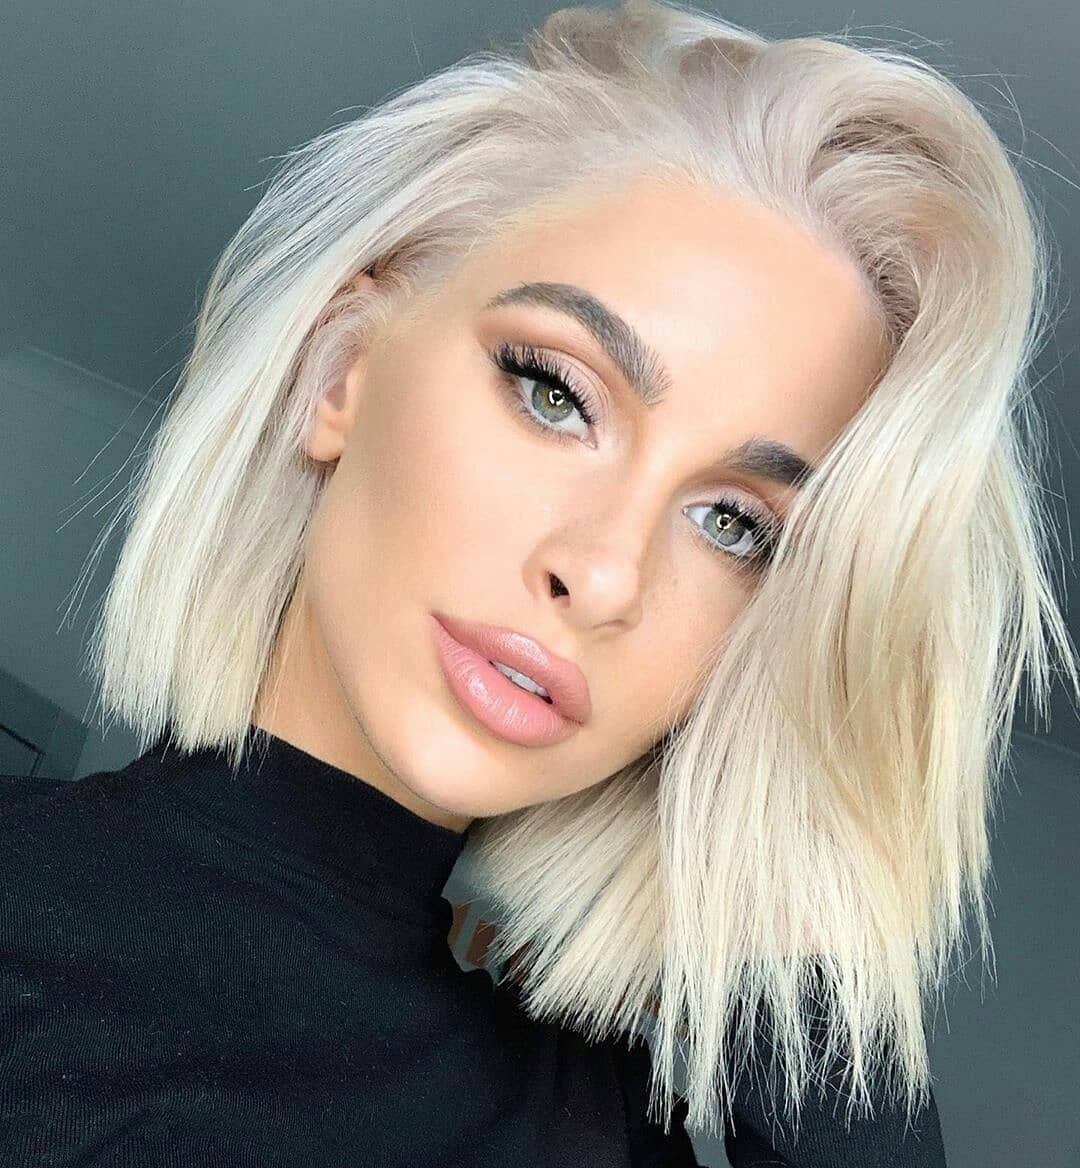 Hairstyles For Short Blonde Hair